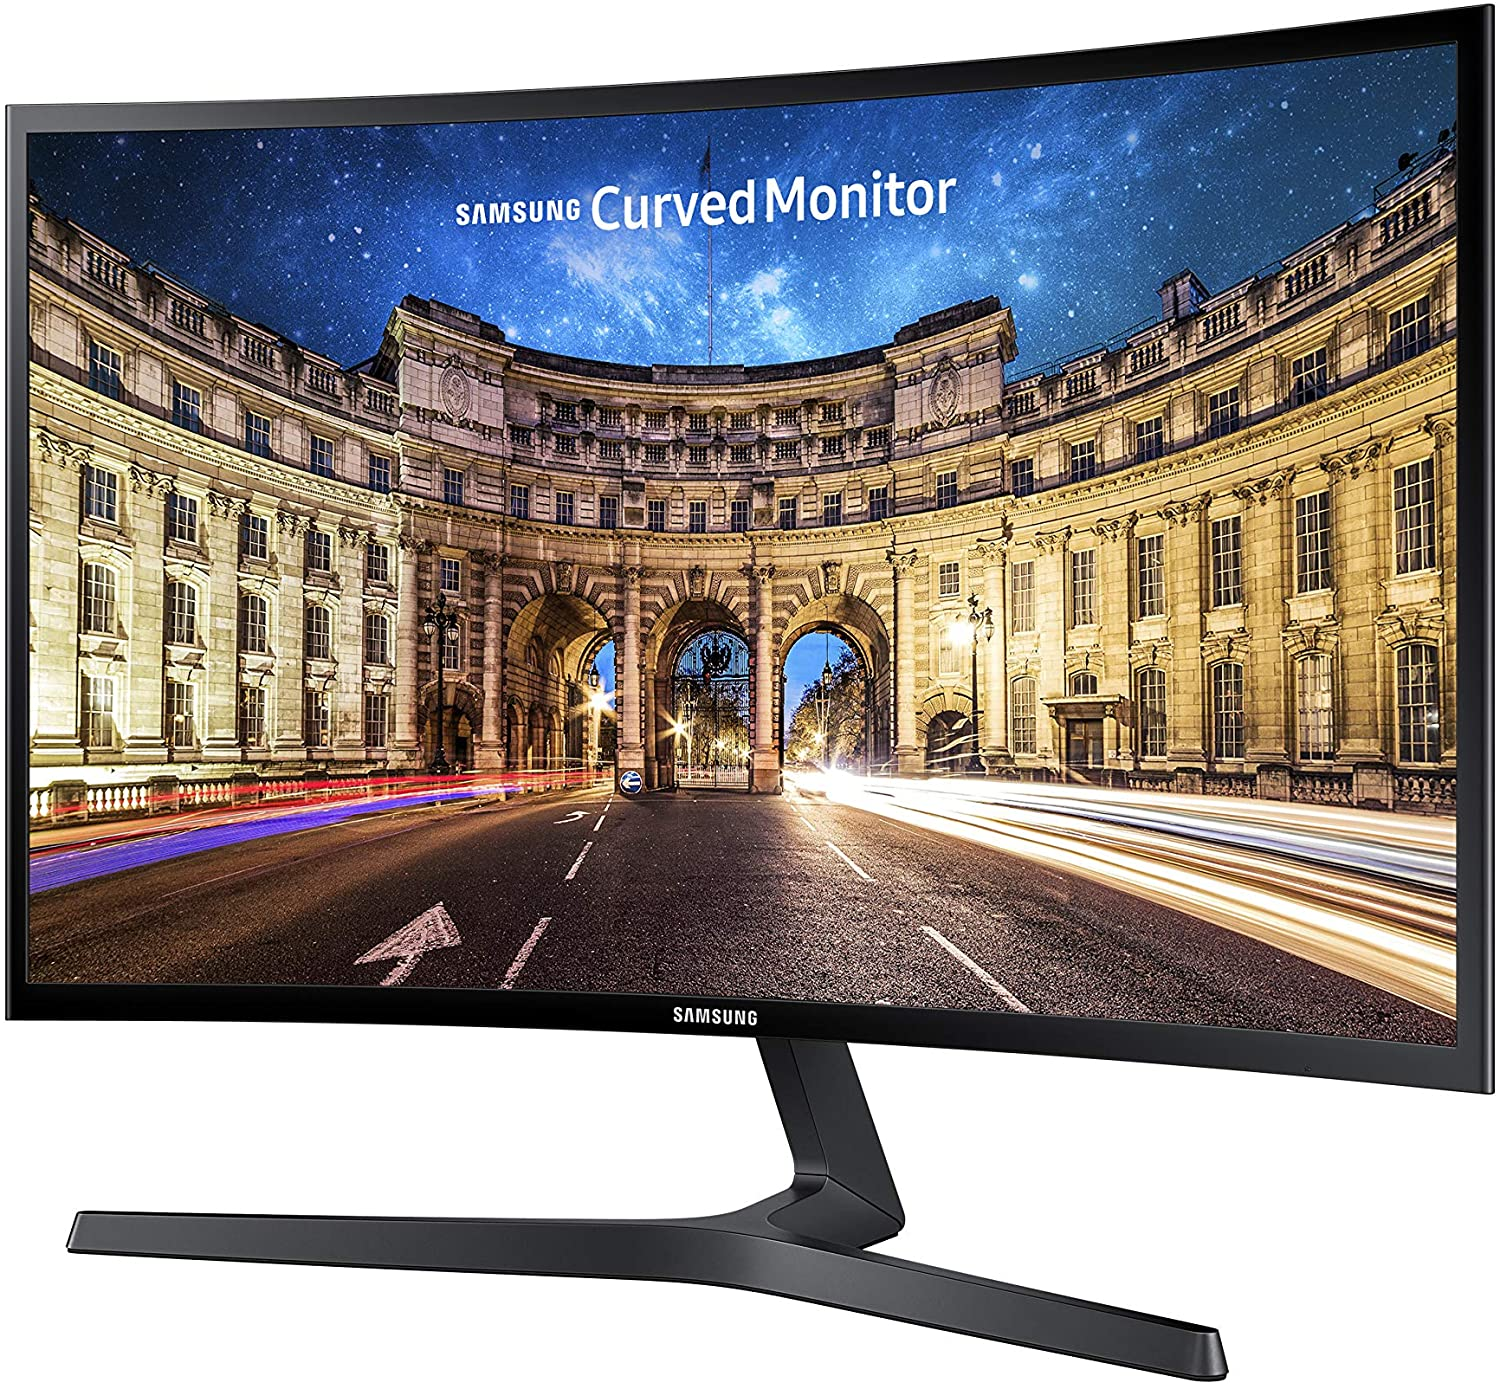 Top 10 Best Curved Monitors under $200 6